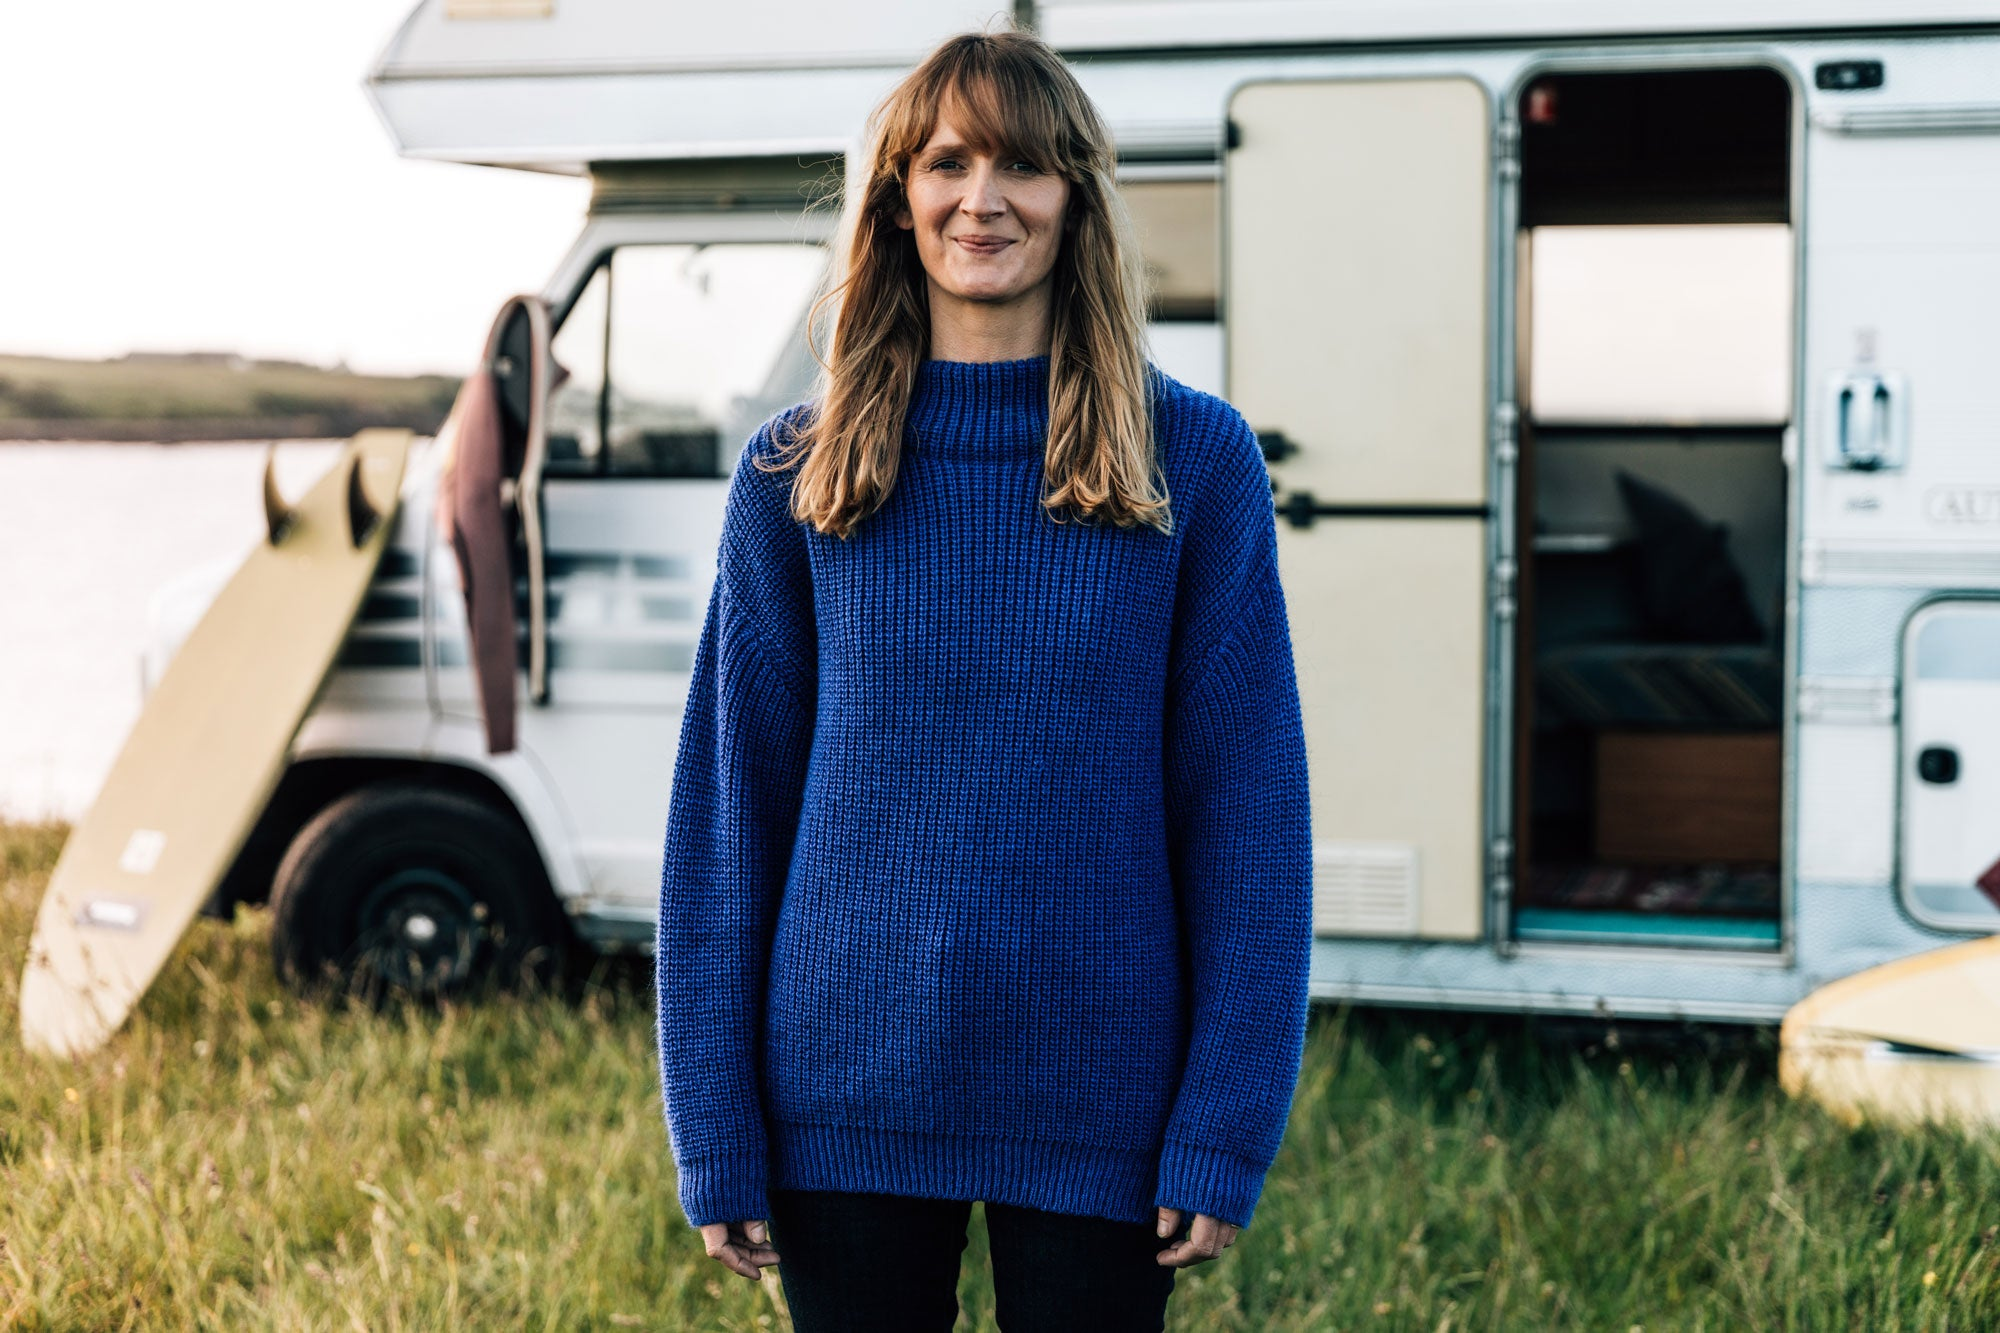 Sally-McGee-with-her-surfboard-and-camper-van